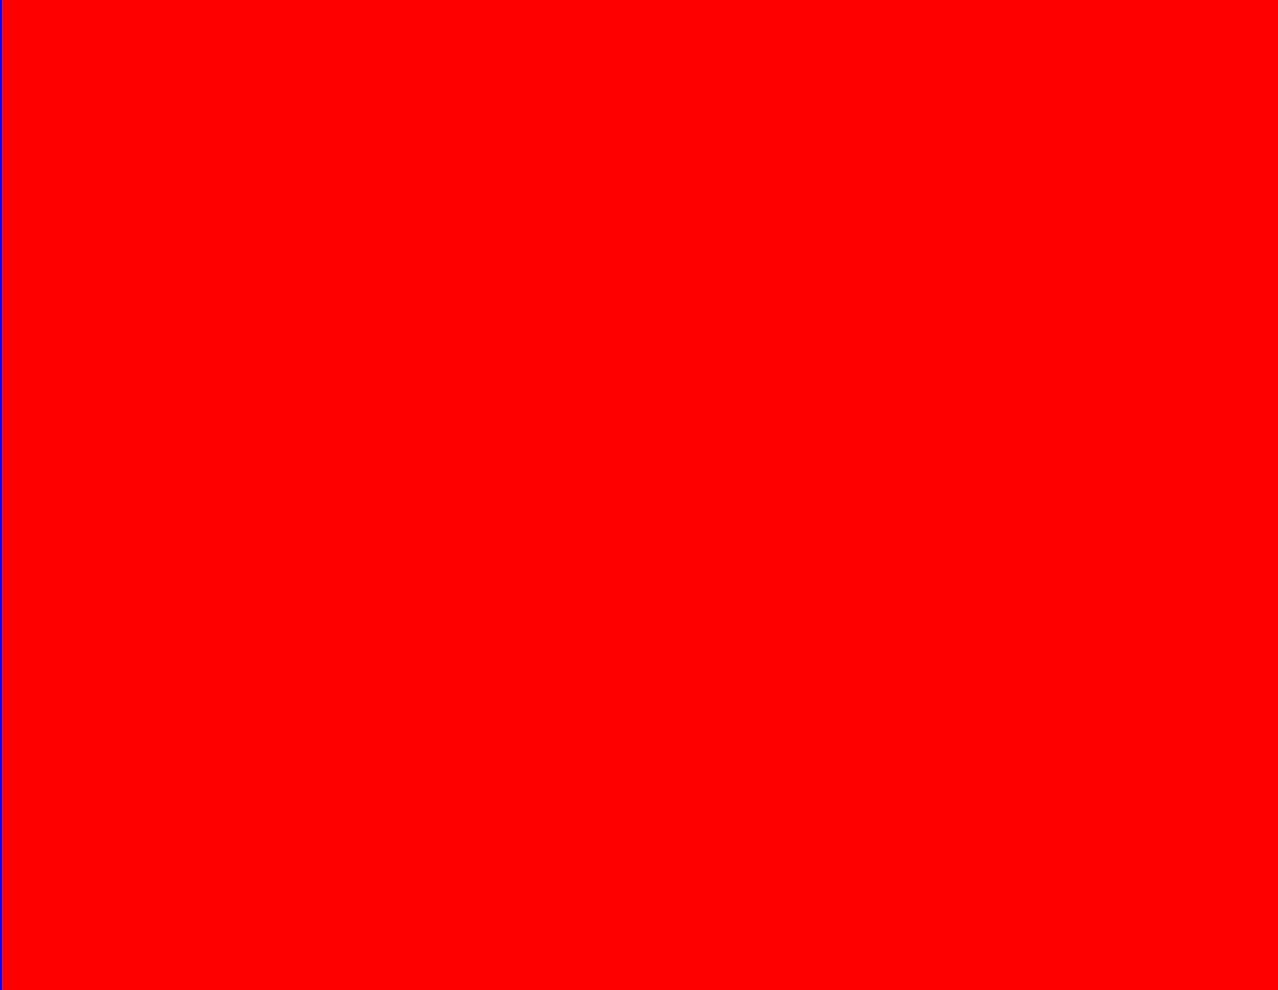 http://www.ledr.com/colours/red.jpg